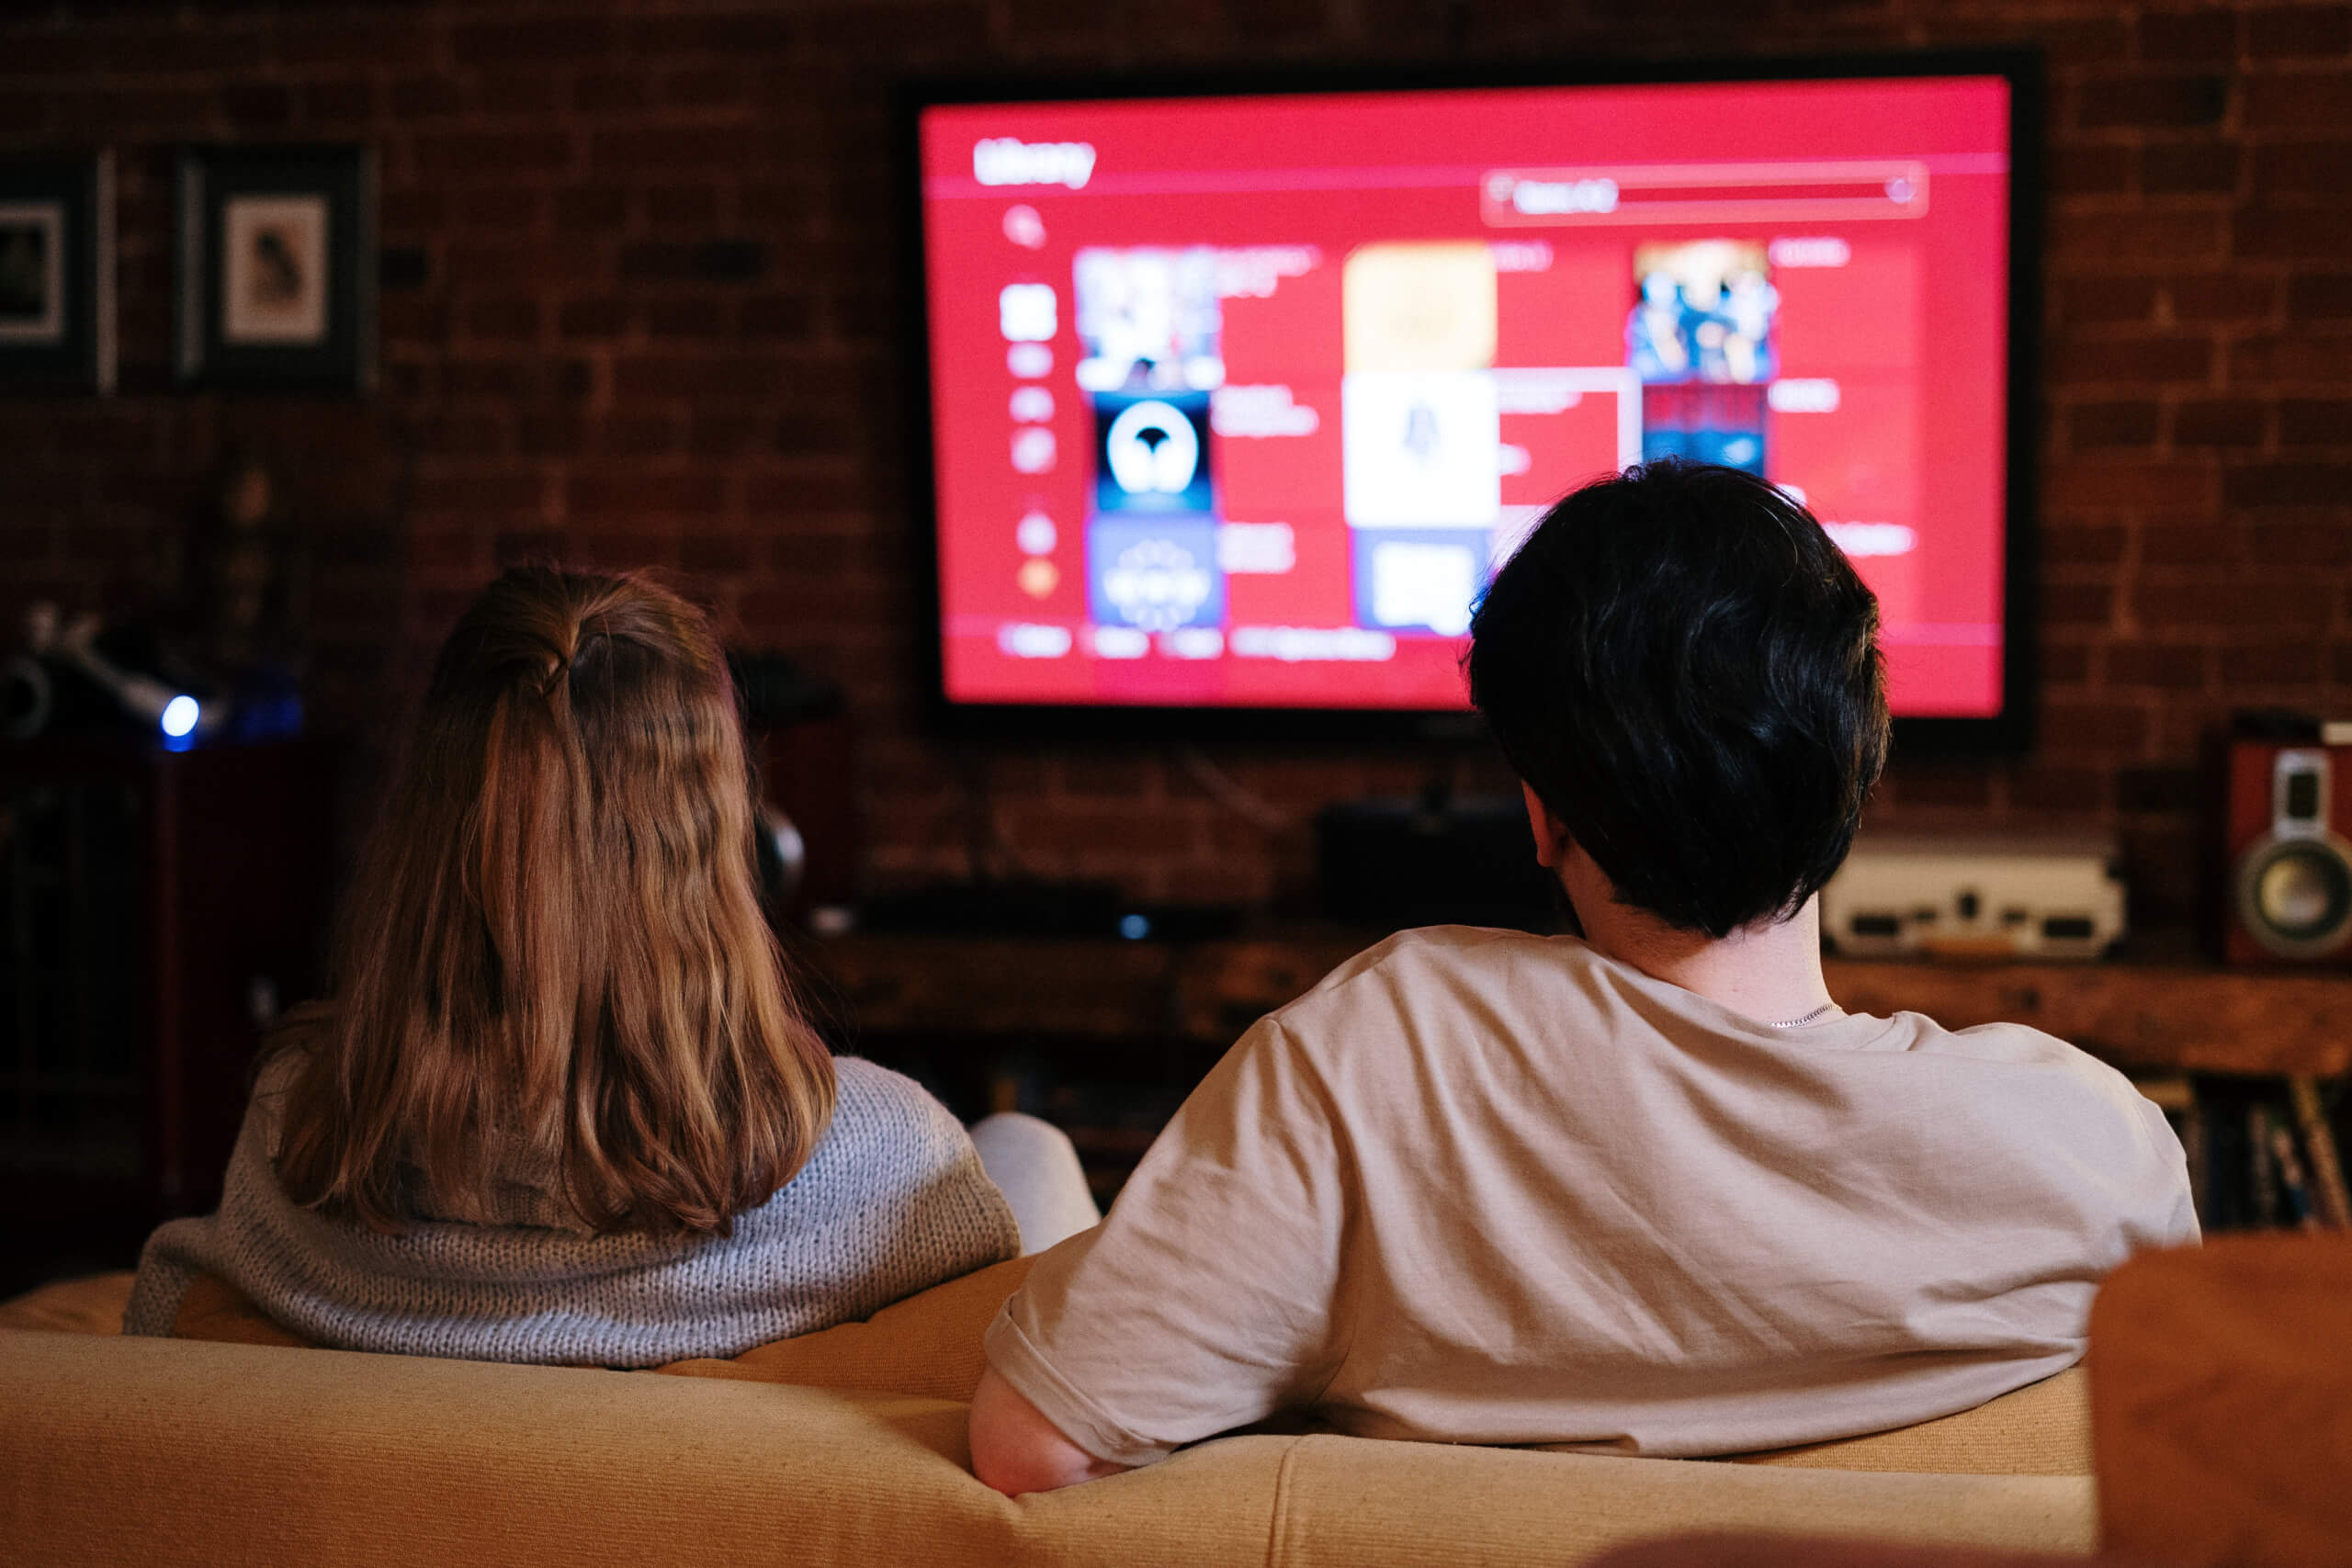 A couple sitting on the couch and browsing movies on their smart TV